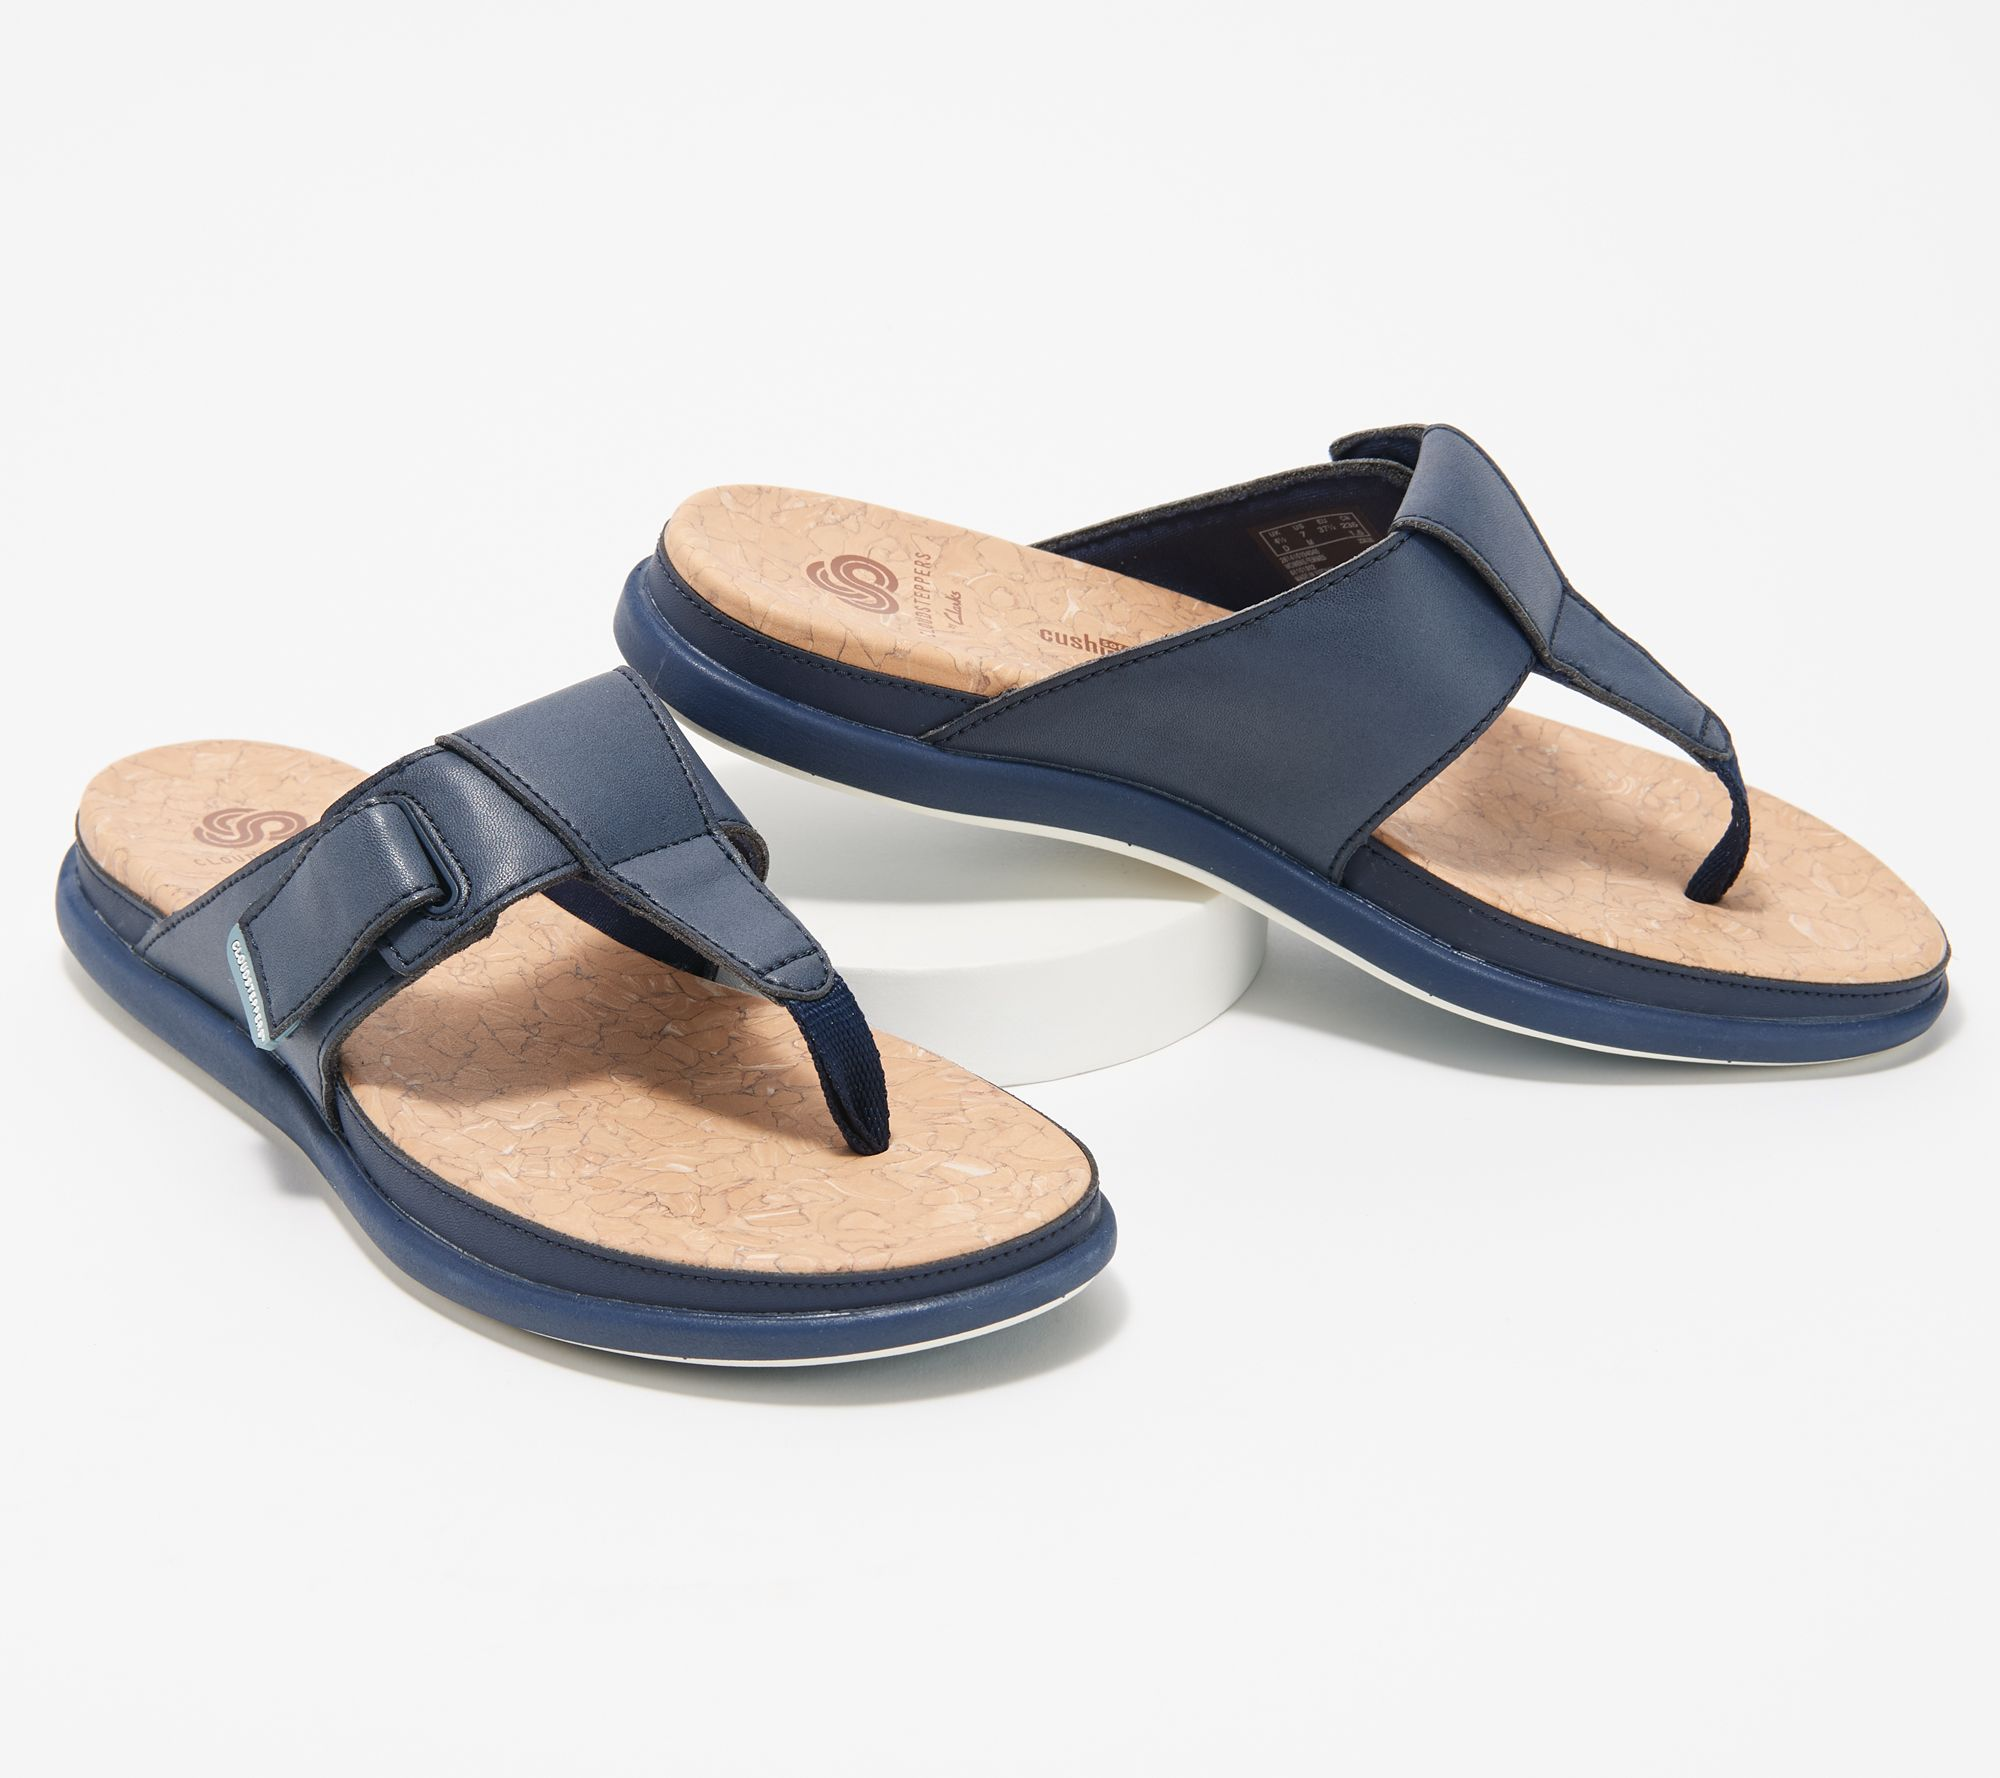 dfe6d530189 CLOUDSTEPPERS by Clarks Thong Sandals - Step June Reef - Page 1 — QVC.com